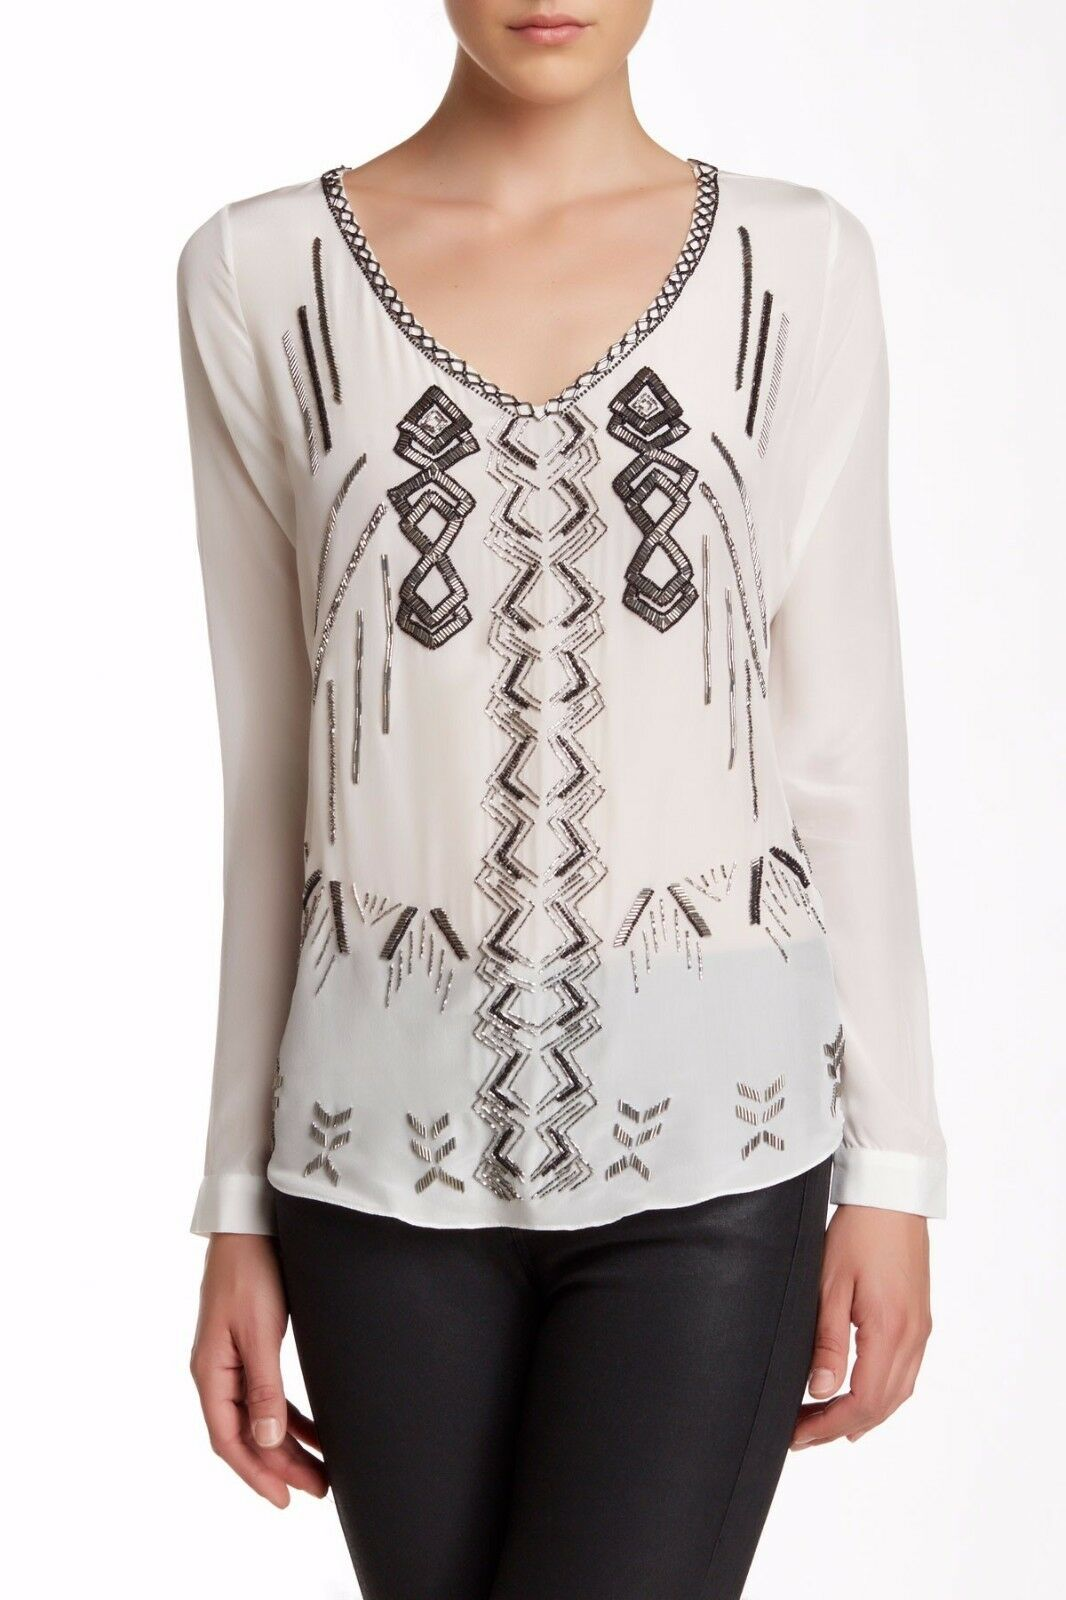 NWT Nicole Miller Beaded Embellished Silk Blouse Top Ivory Größe S 345